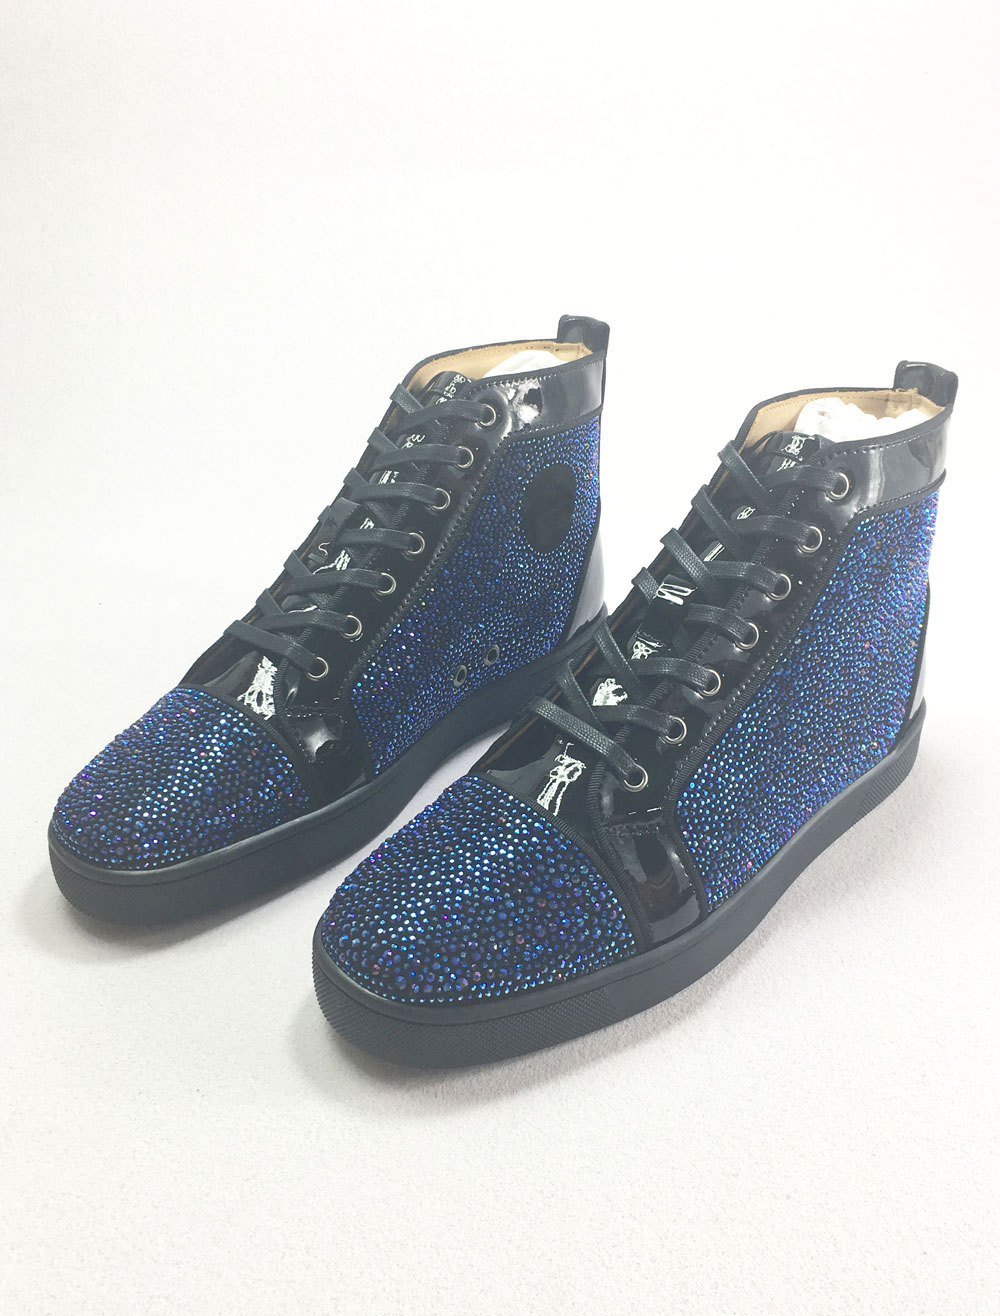 Blue Skate Shoes Leather Men's Round Toe Lace Up Rhinestones High Top Sneakers thumbnail